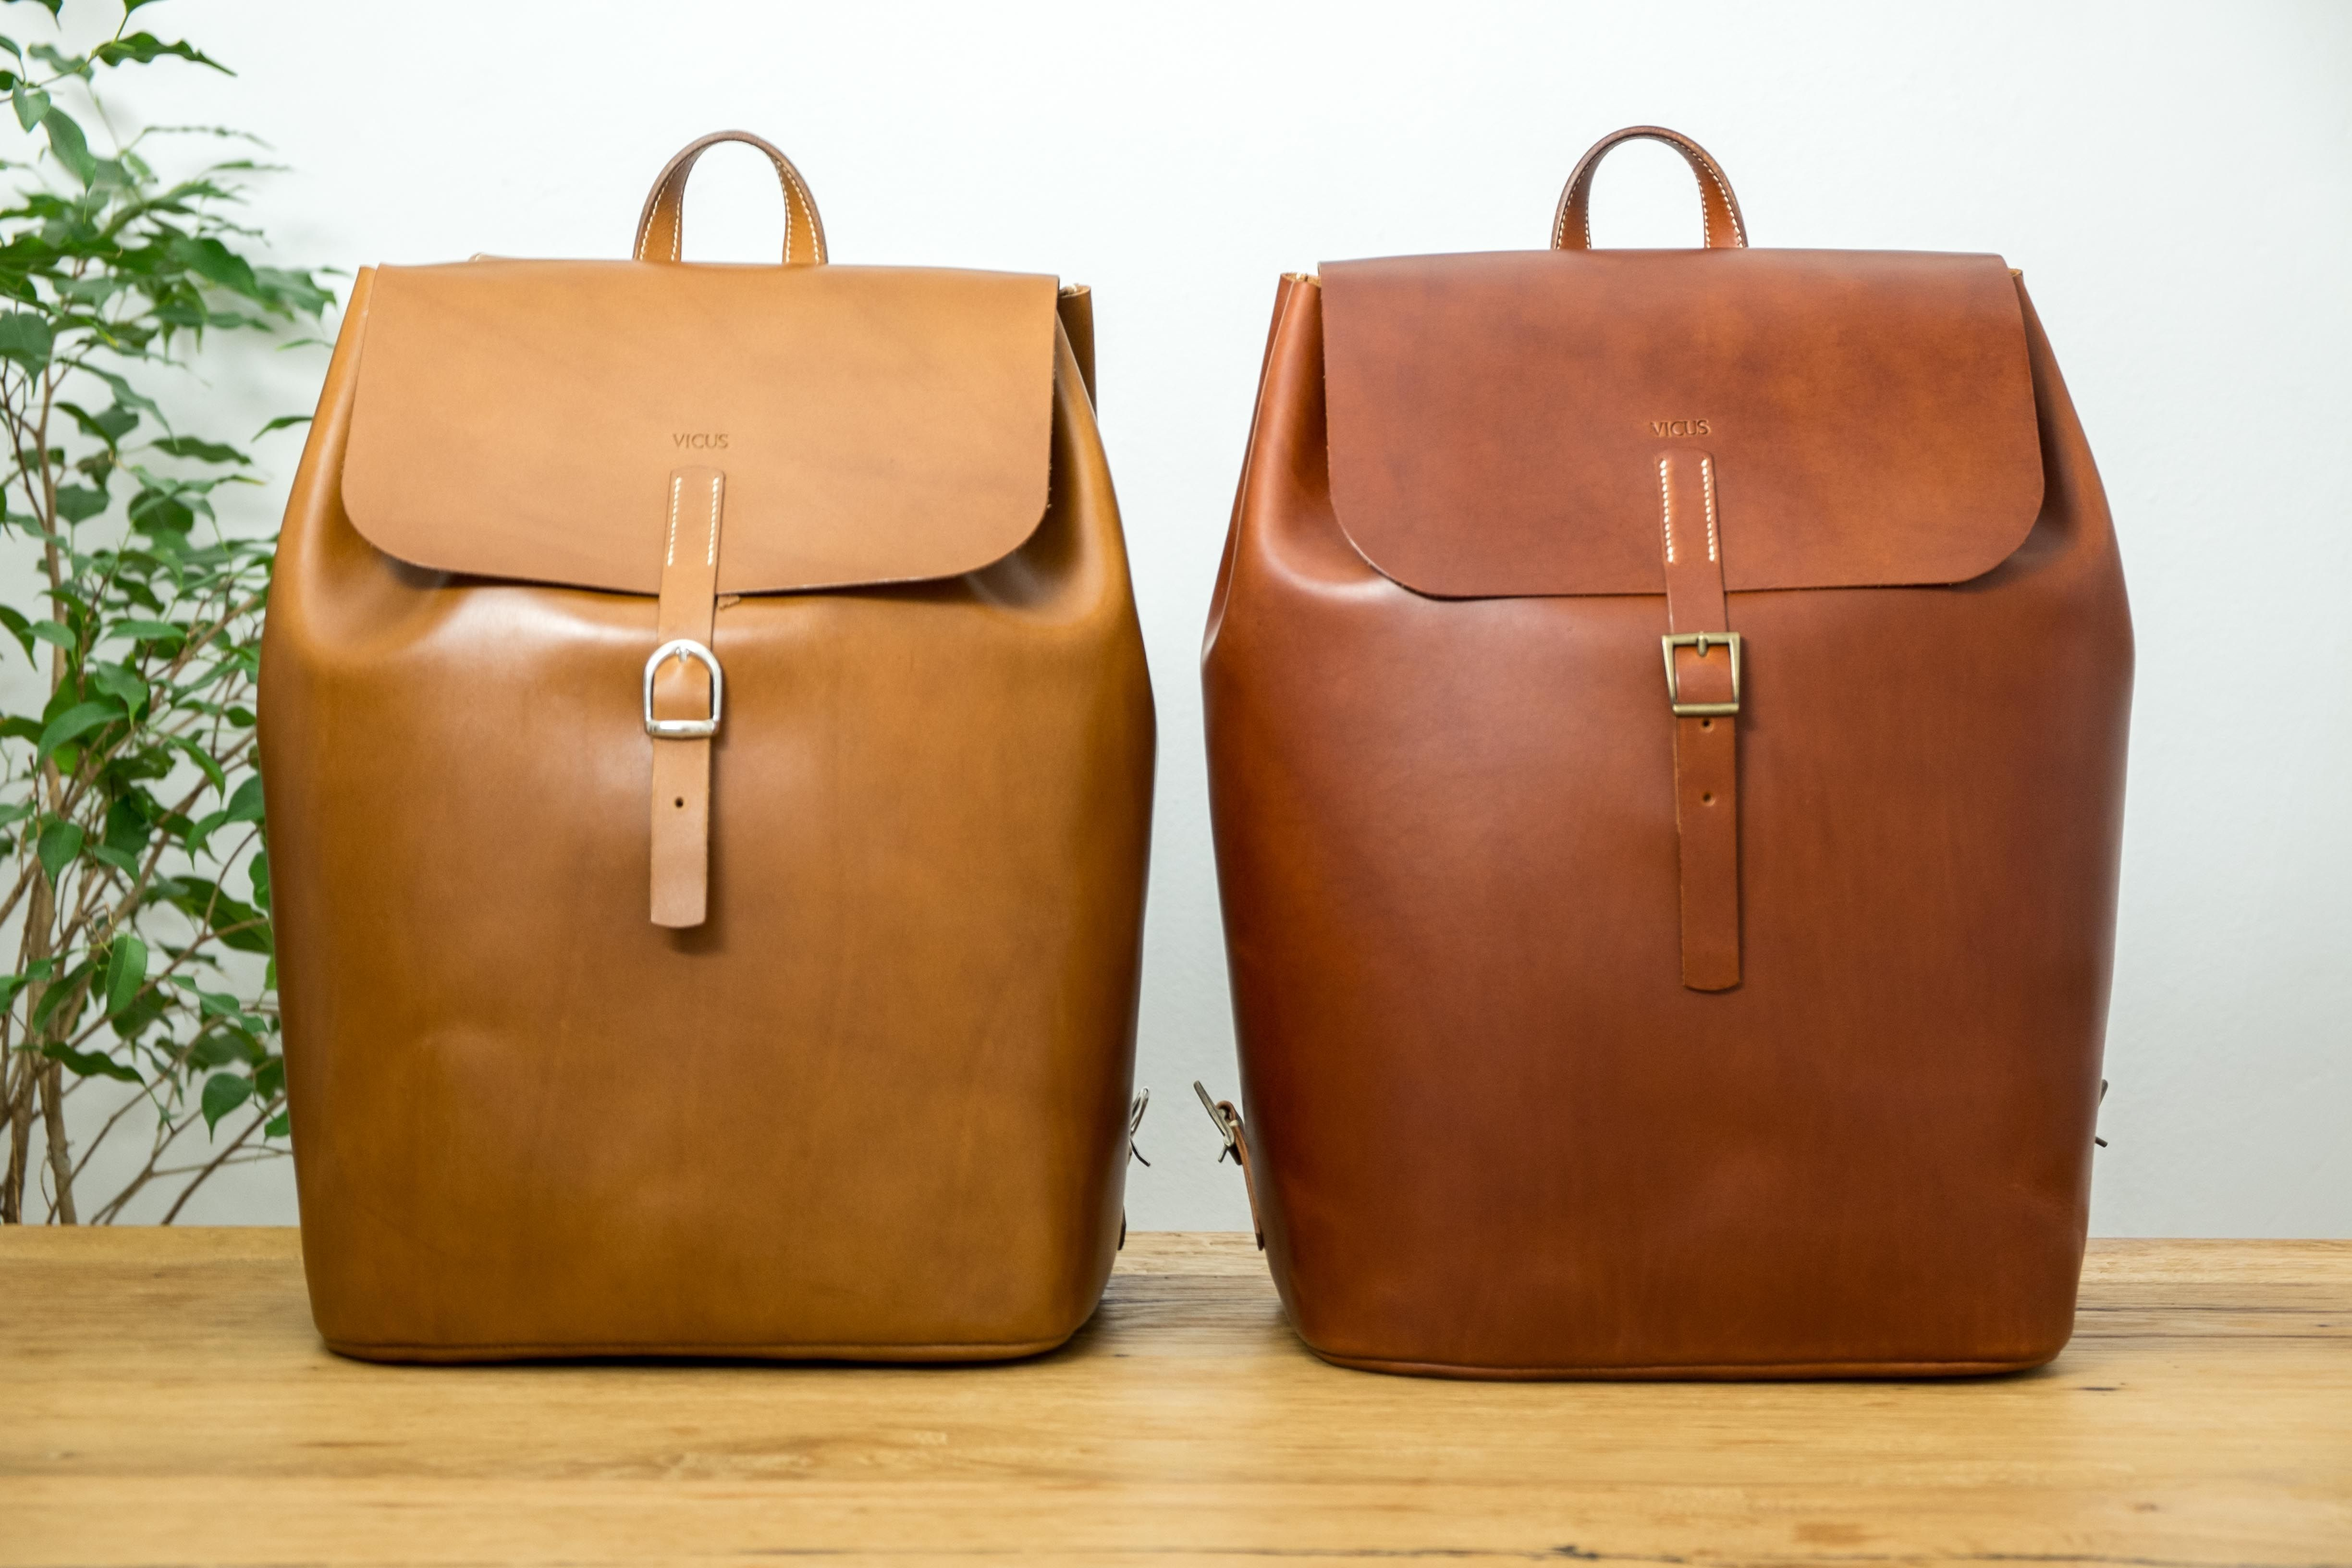 English Tan and Whisky backpacks. Fully handmade, from the cut to the finishing process, going through hand-stitching. Veg tan leather from Tuscany.